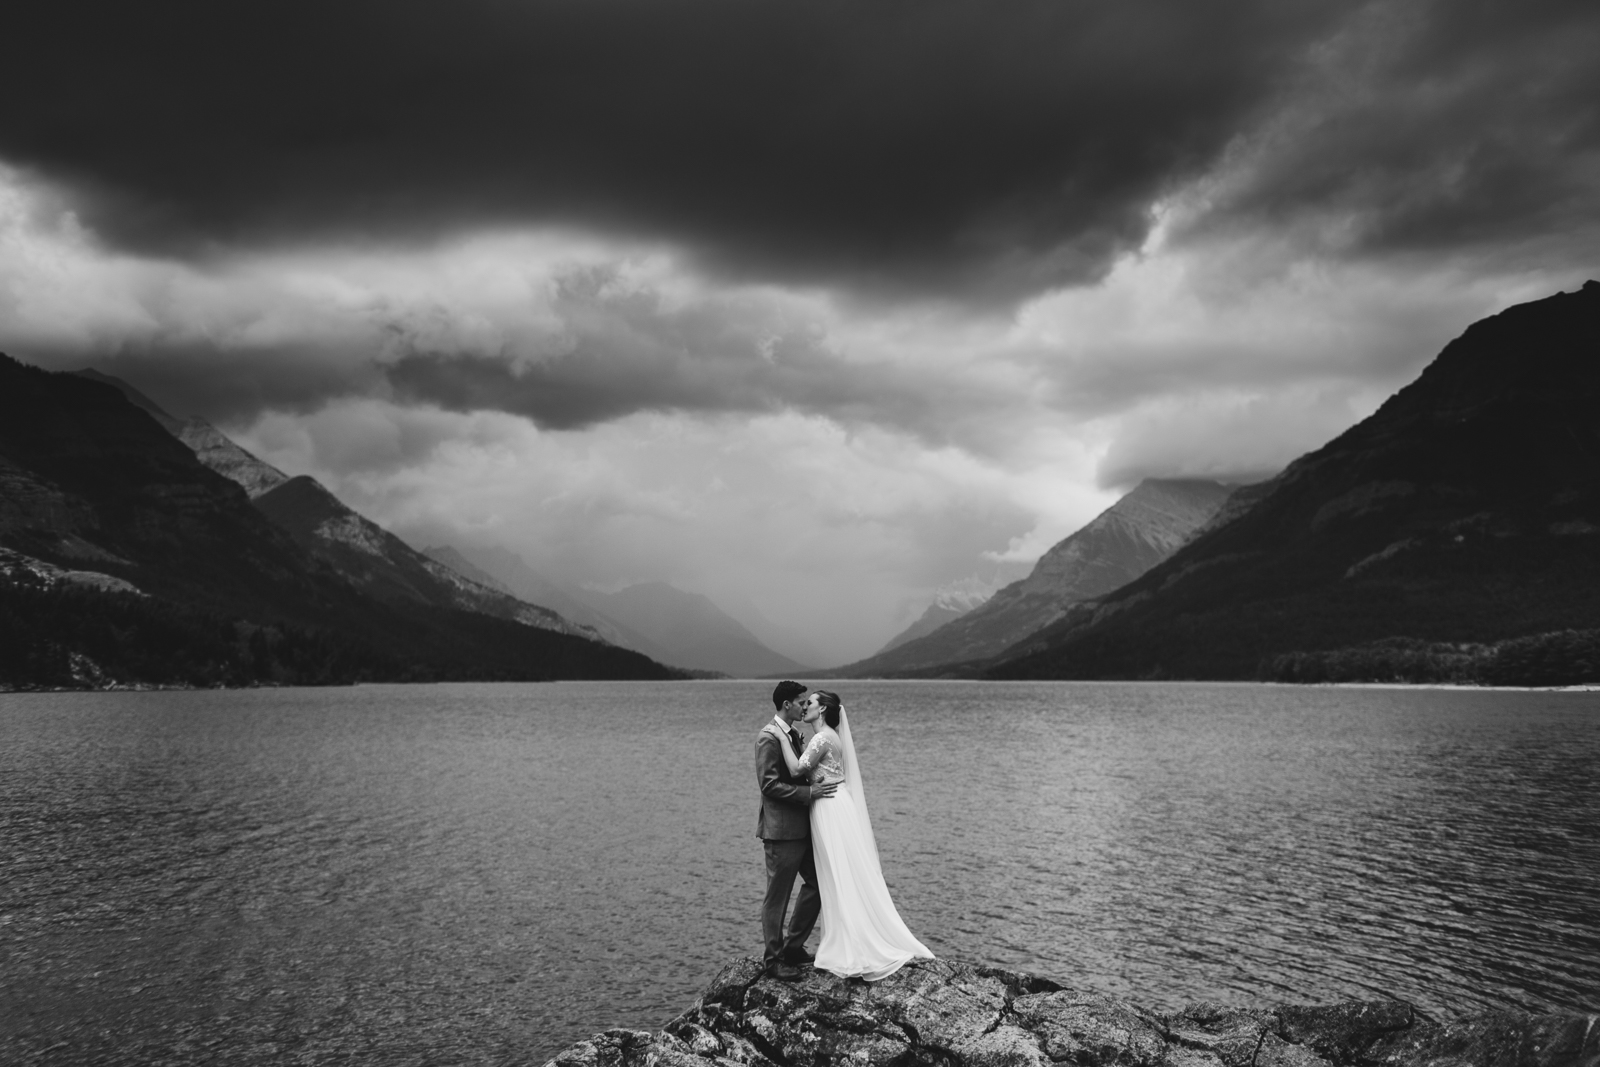 88Willow_and_Wolf_Photography_Katie_and_James_Waterton_Wedding_Blog217Willow_and_Wolf_Photography_Katie_and_James_Waterton_Wedding_Portraits_-ATP_5994